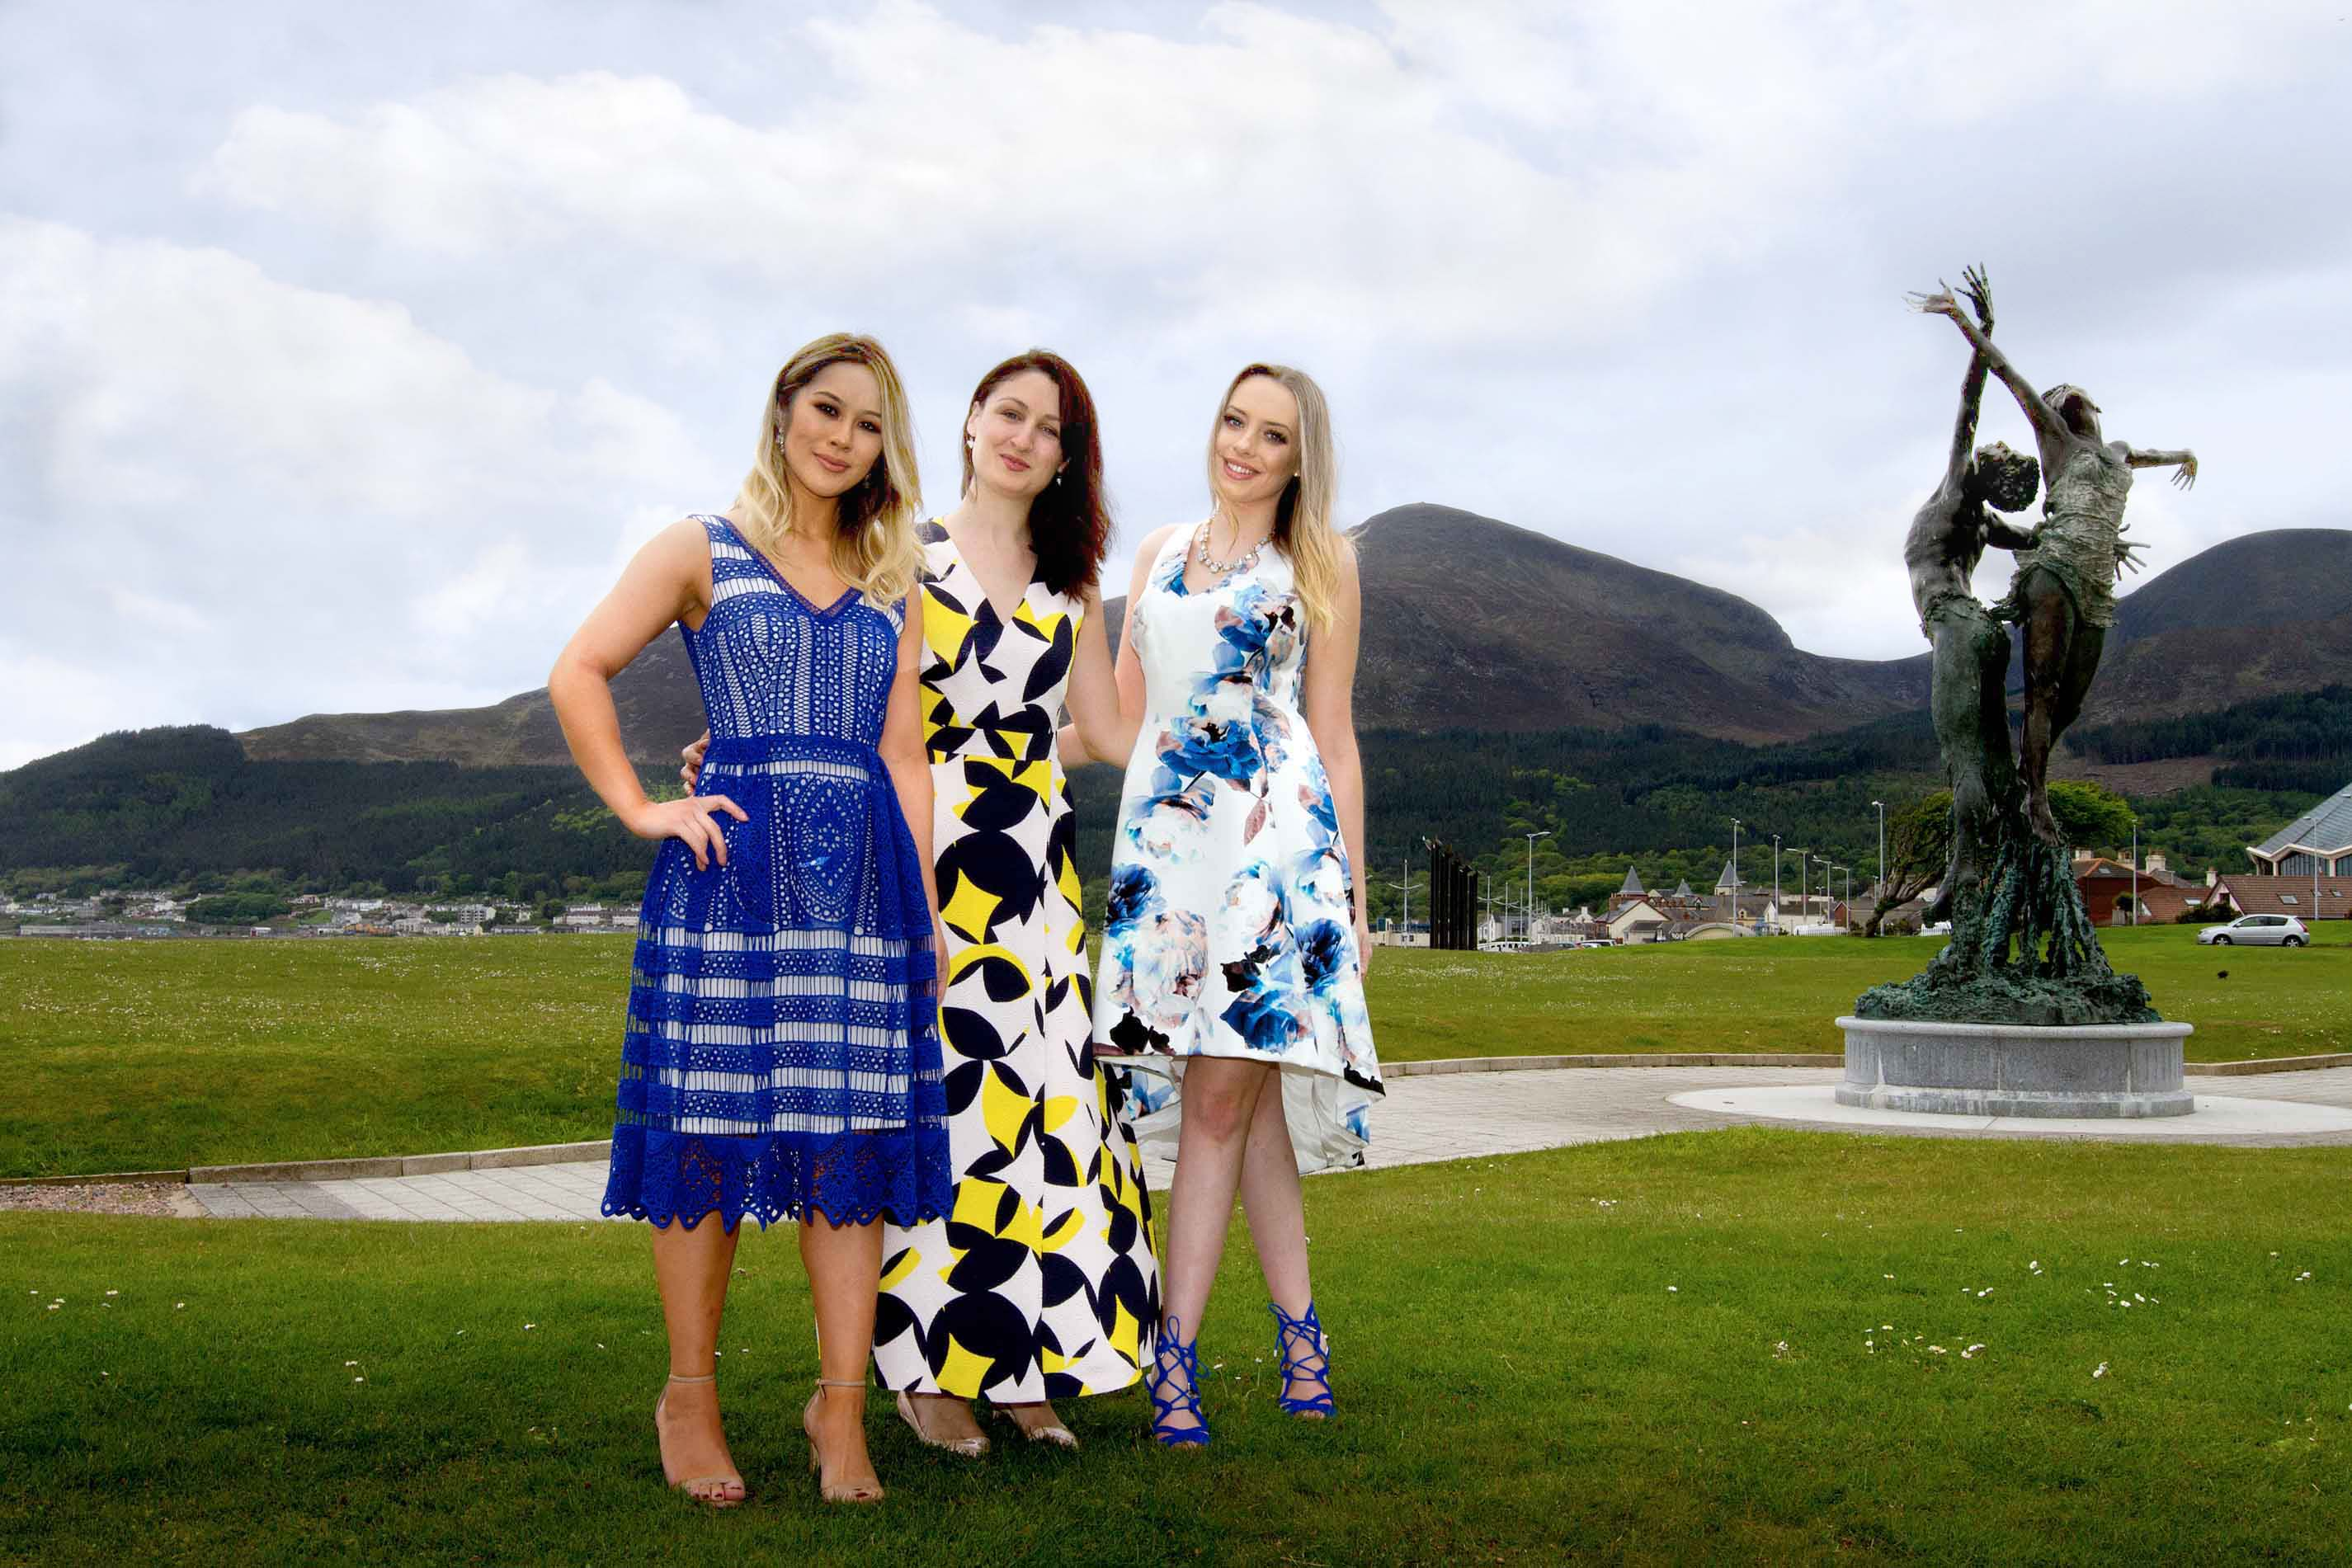 Katherin Farrie (centre), from Victoria Square, is joined by Slieve Donard Spa therapists, Rebecca Murray and Sambie Lee, to help prepare for the Summer Styling Showcase event, in association with Victoria Square.